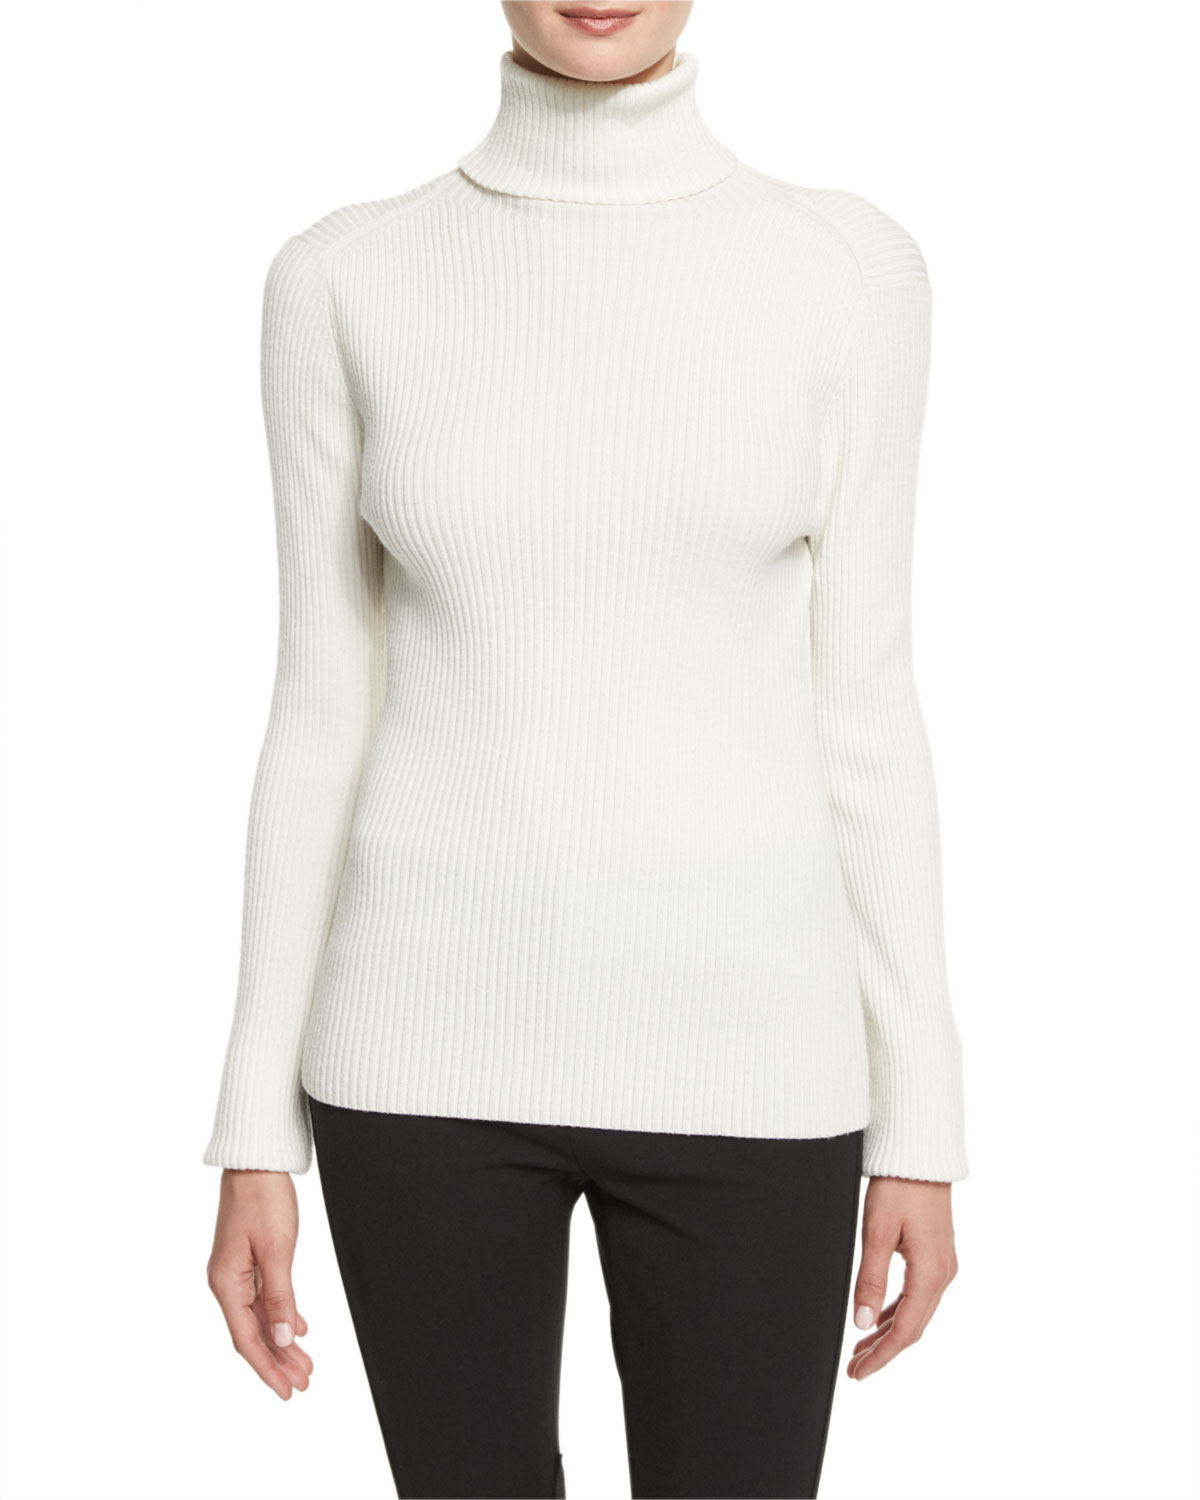 3adfb4880931 3.1 Phillip Lim Long-Sleeve Ribbed Turtleneck Sweater